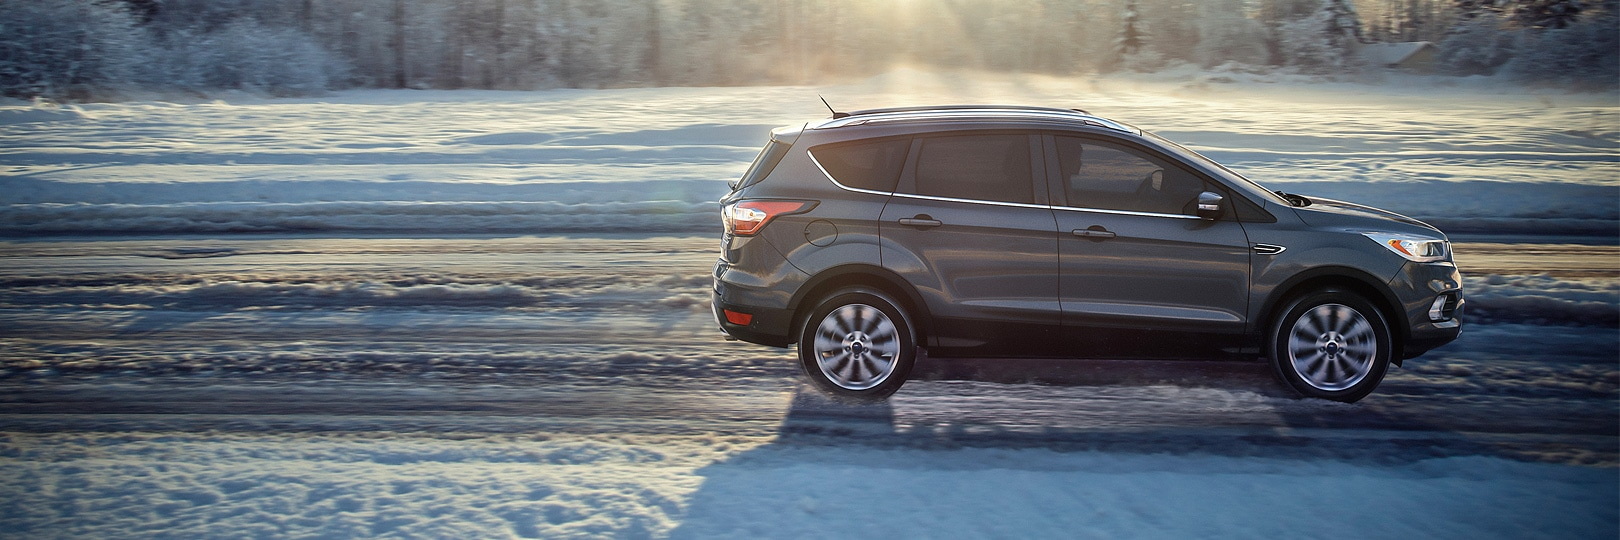 2017 Ford Escape Lease Deals near Elyria, OH